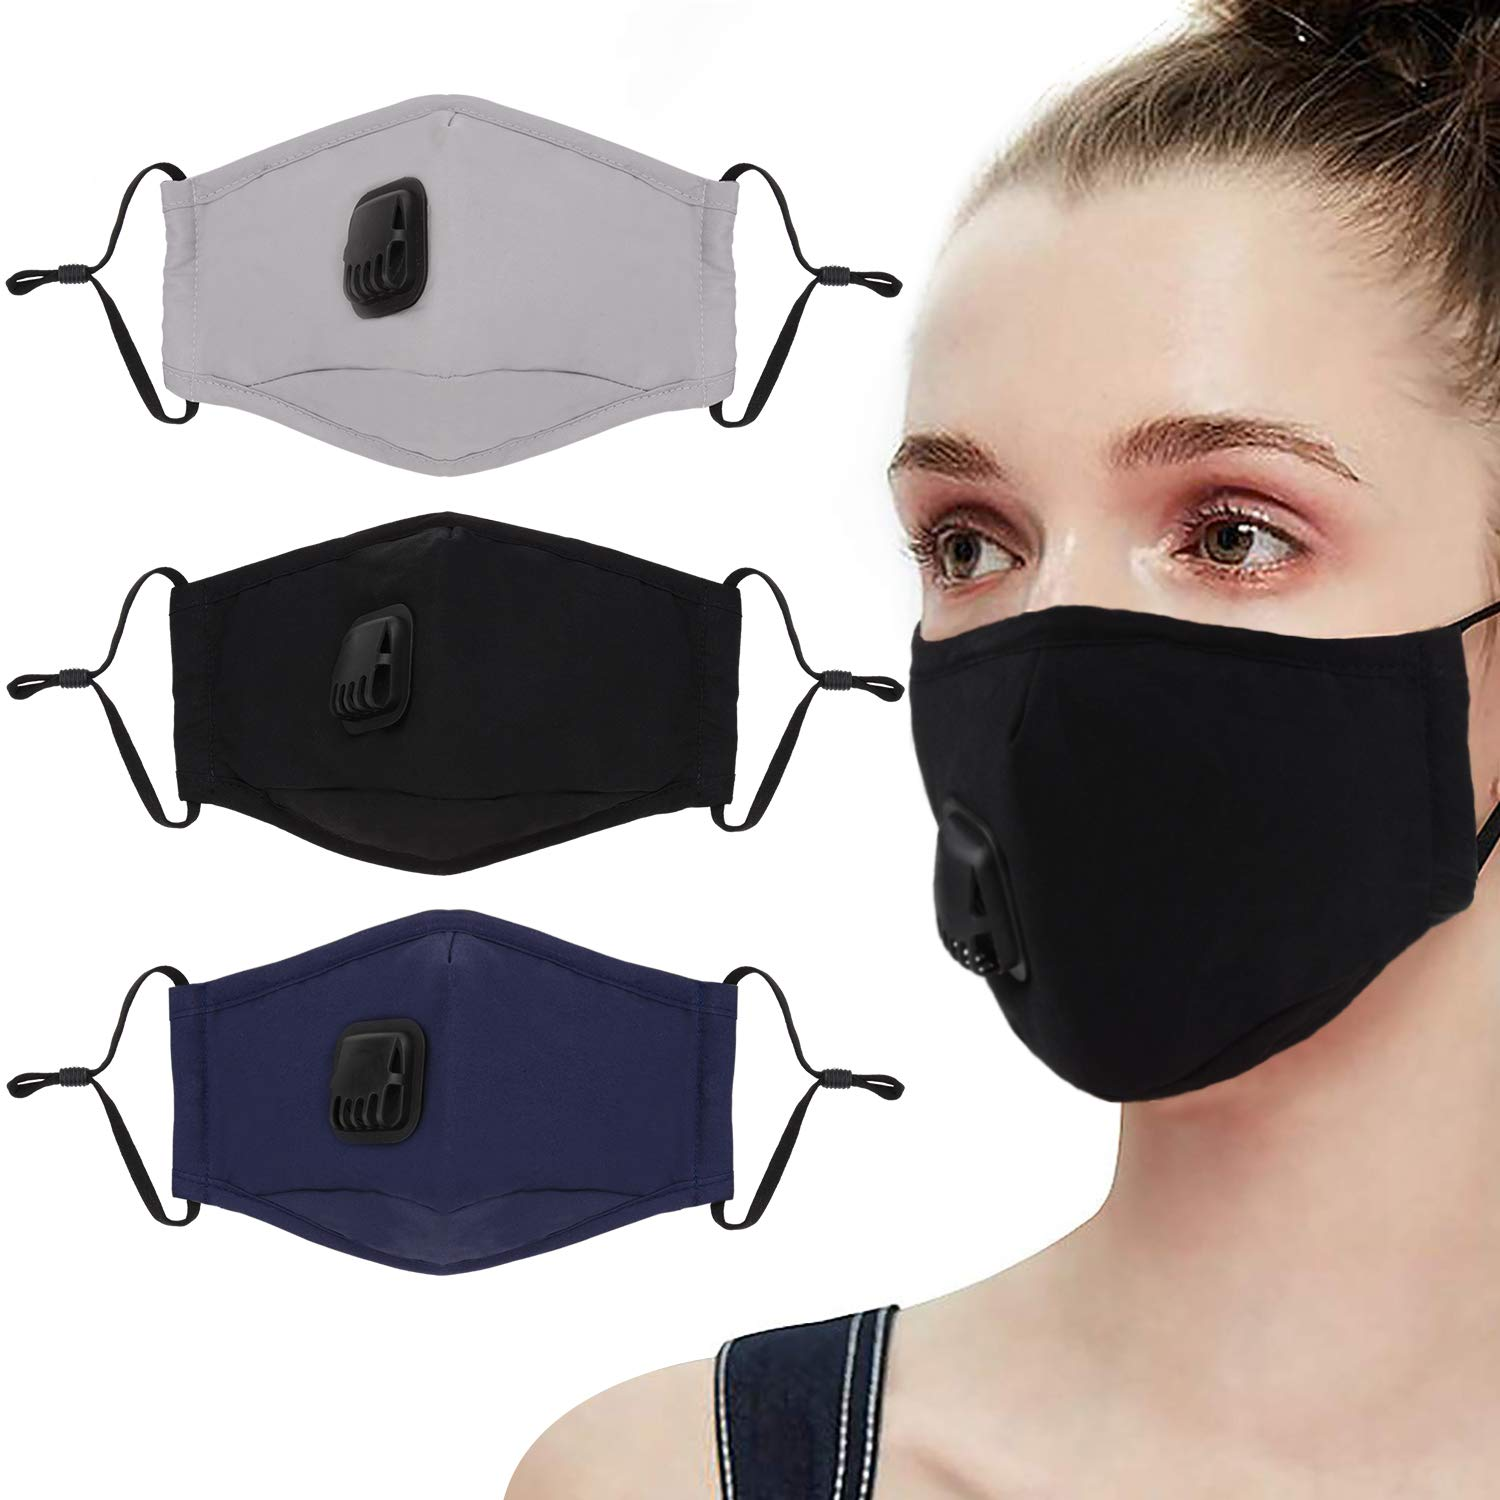 Very good anti pollution mask